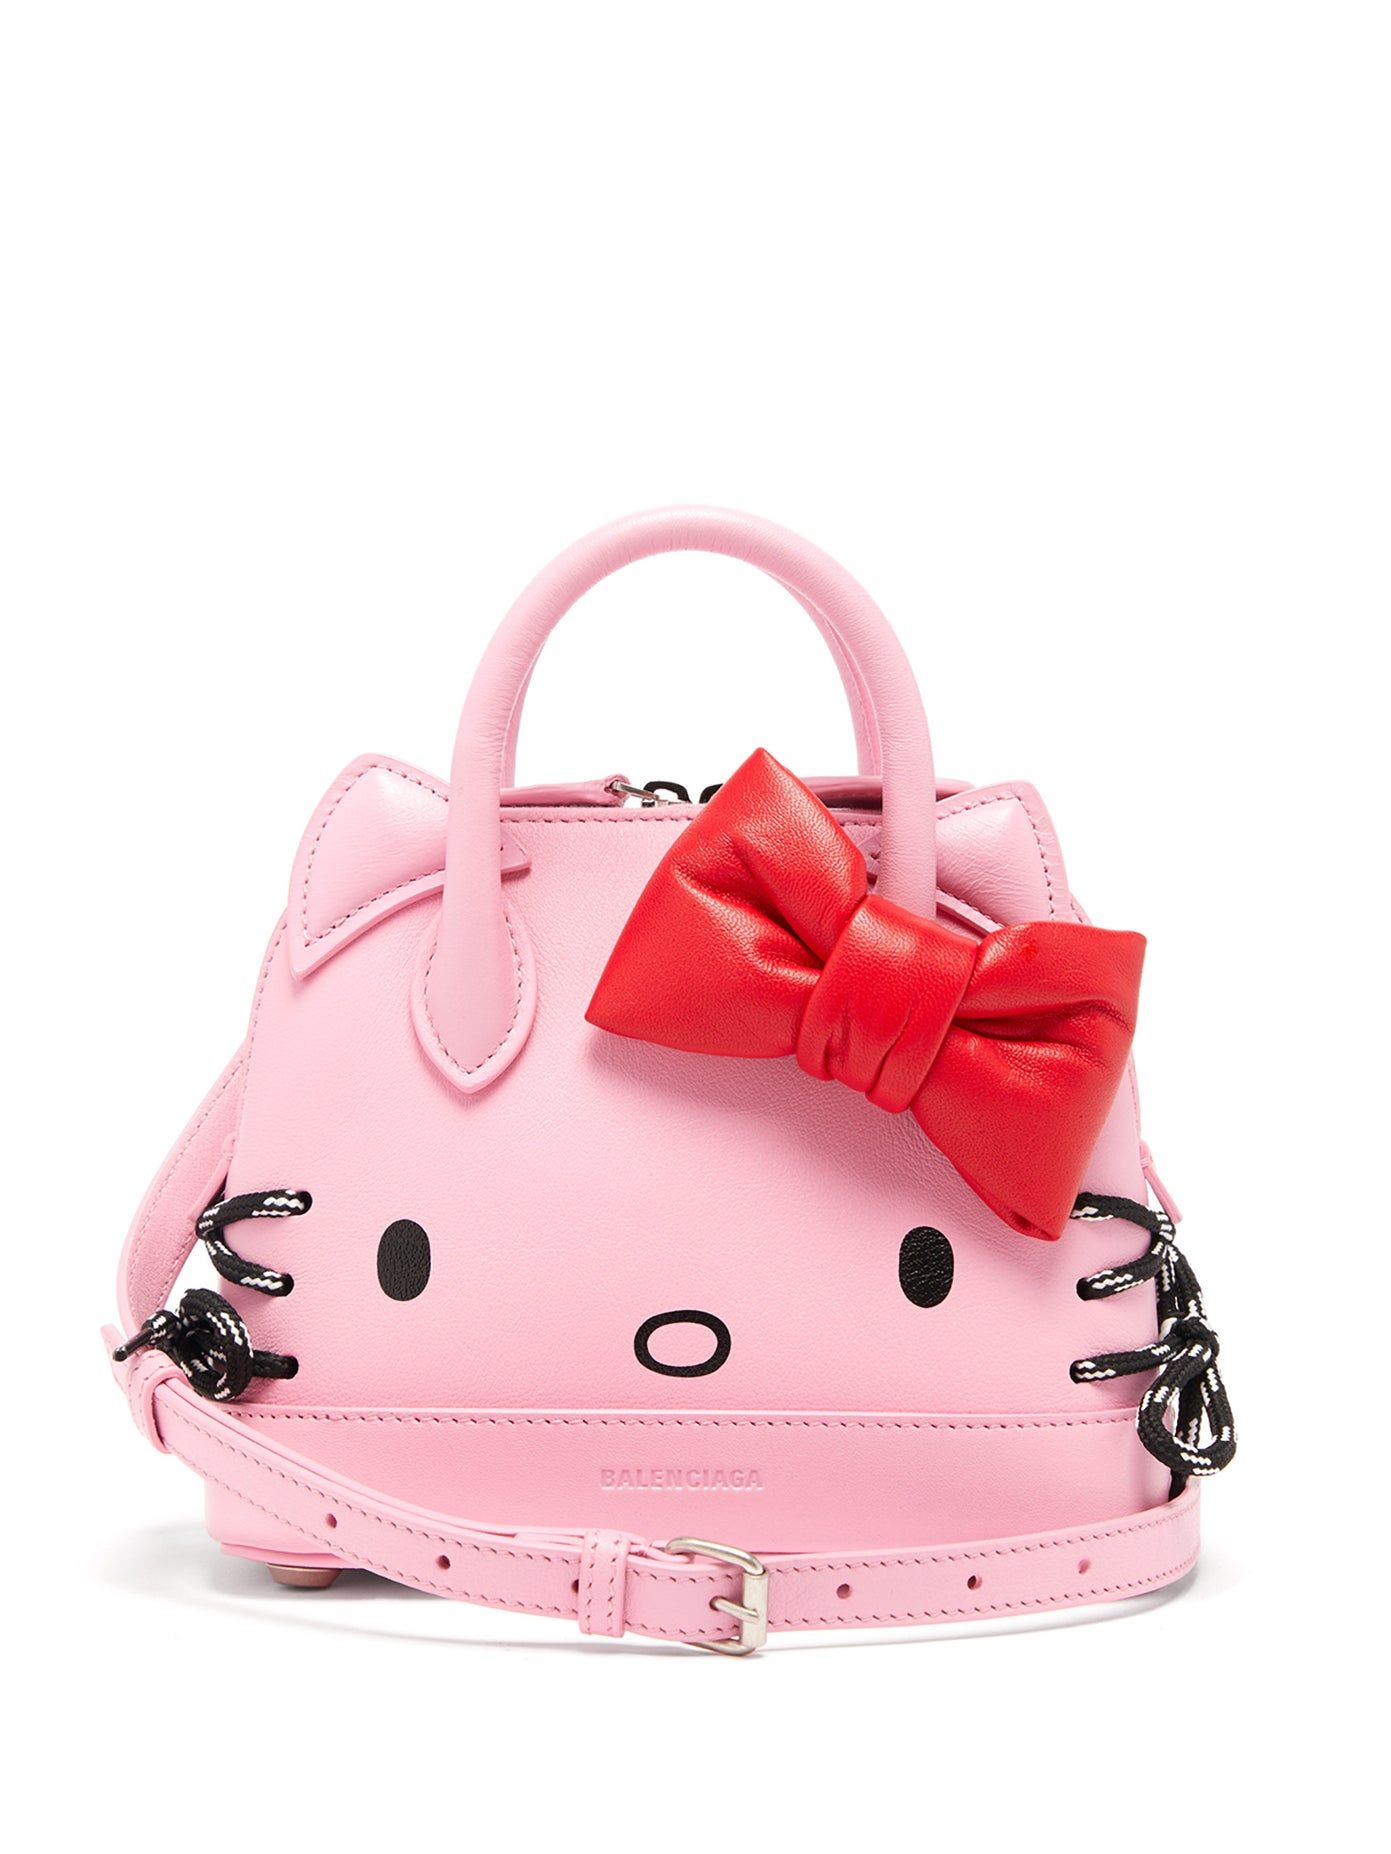 balenciaga-x-hello-kitty-ville-xxs-bag-pink